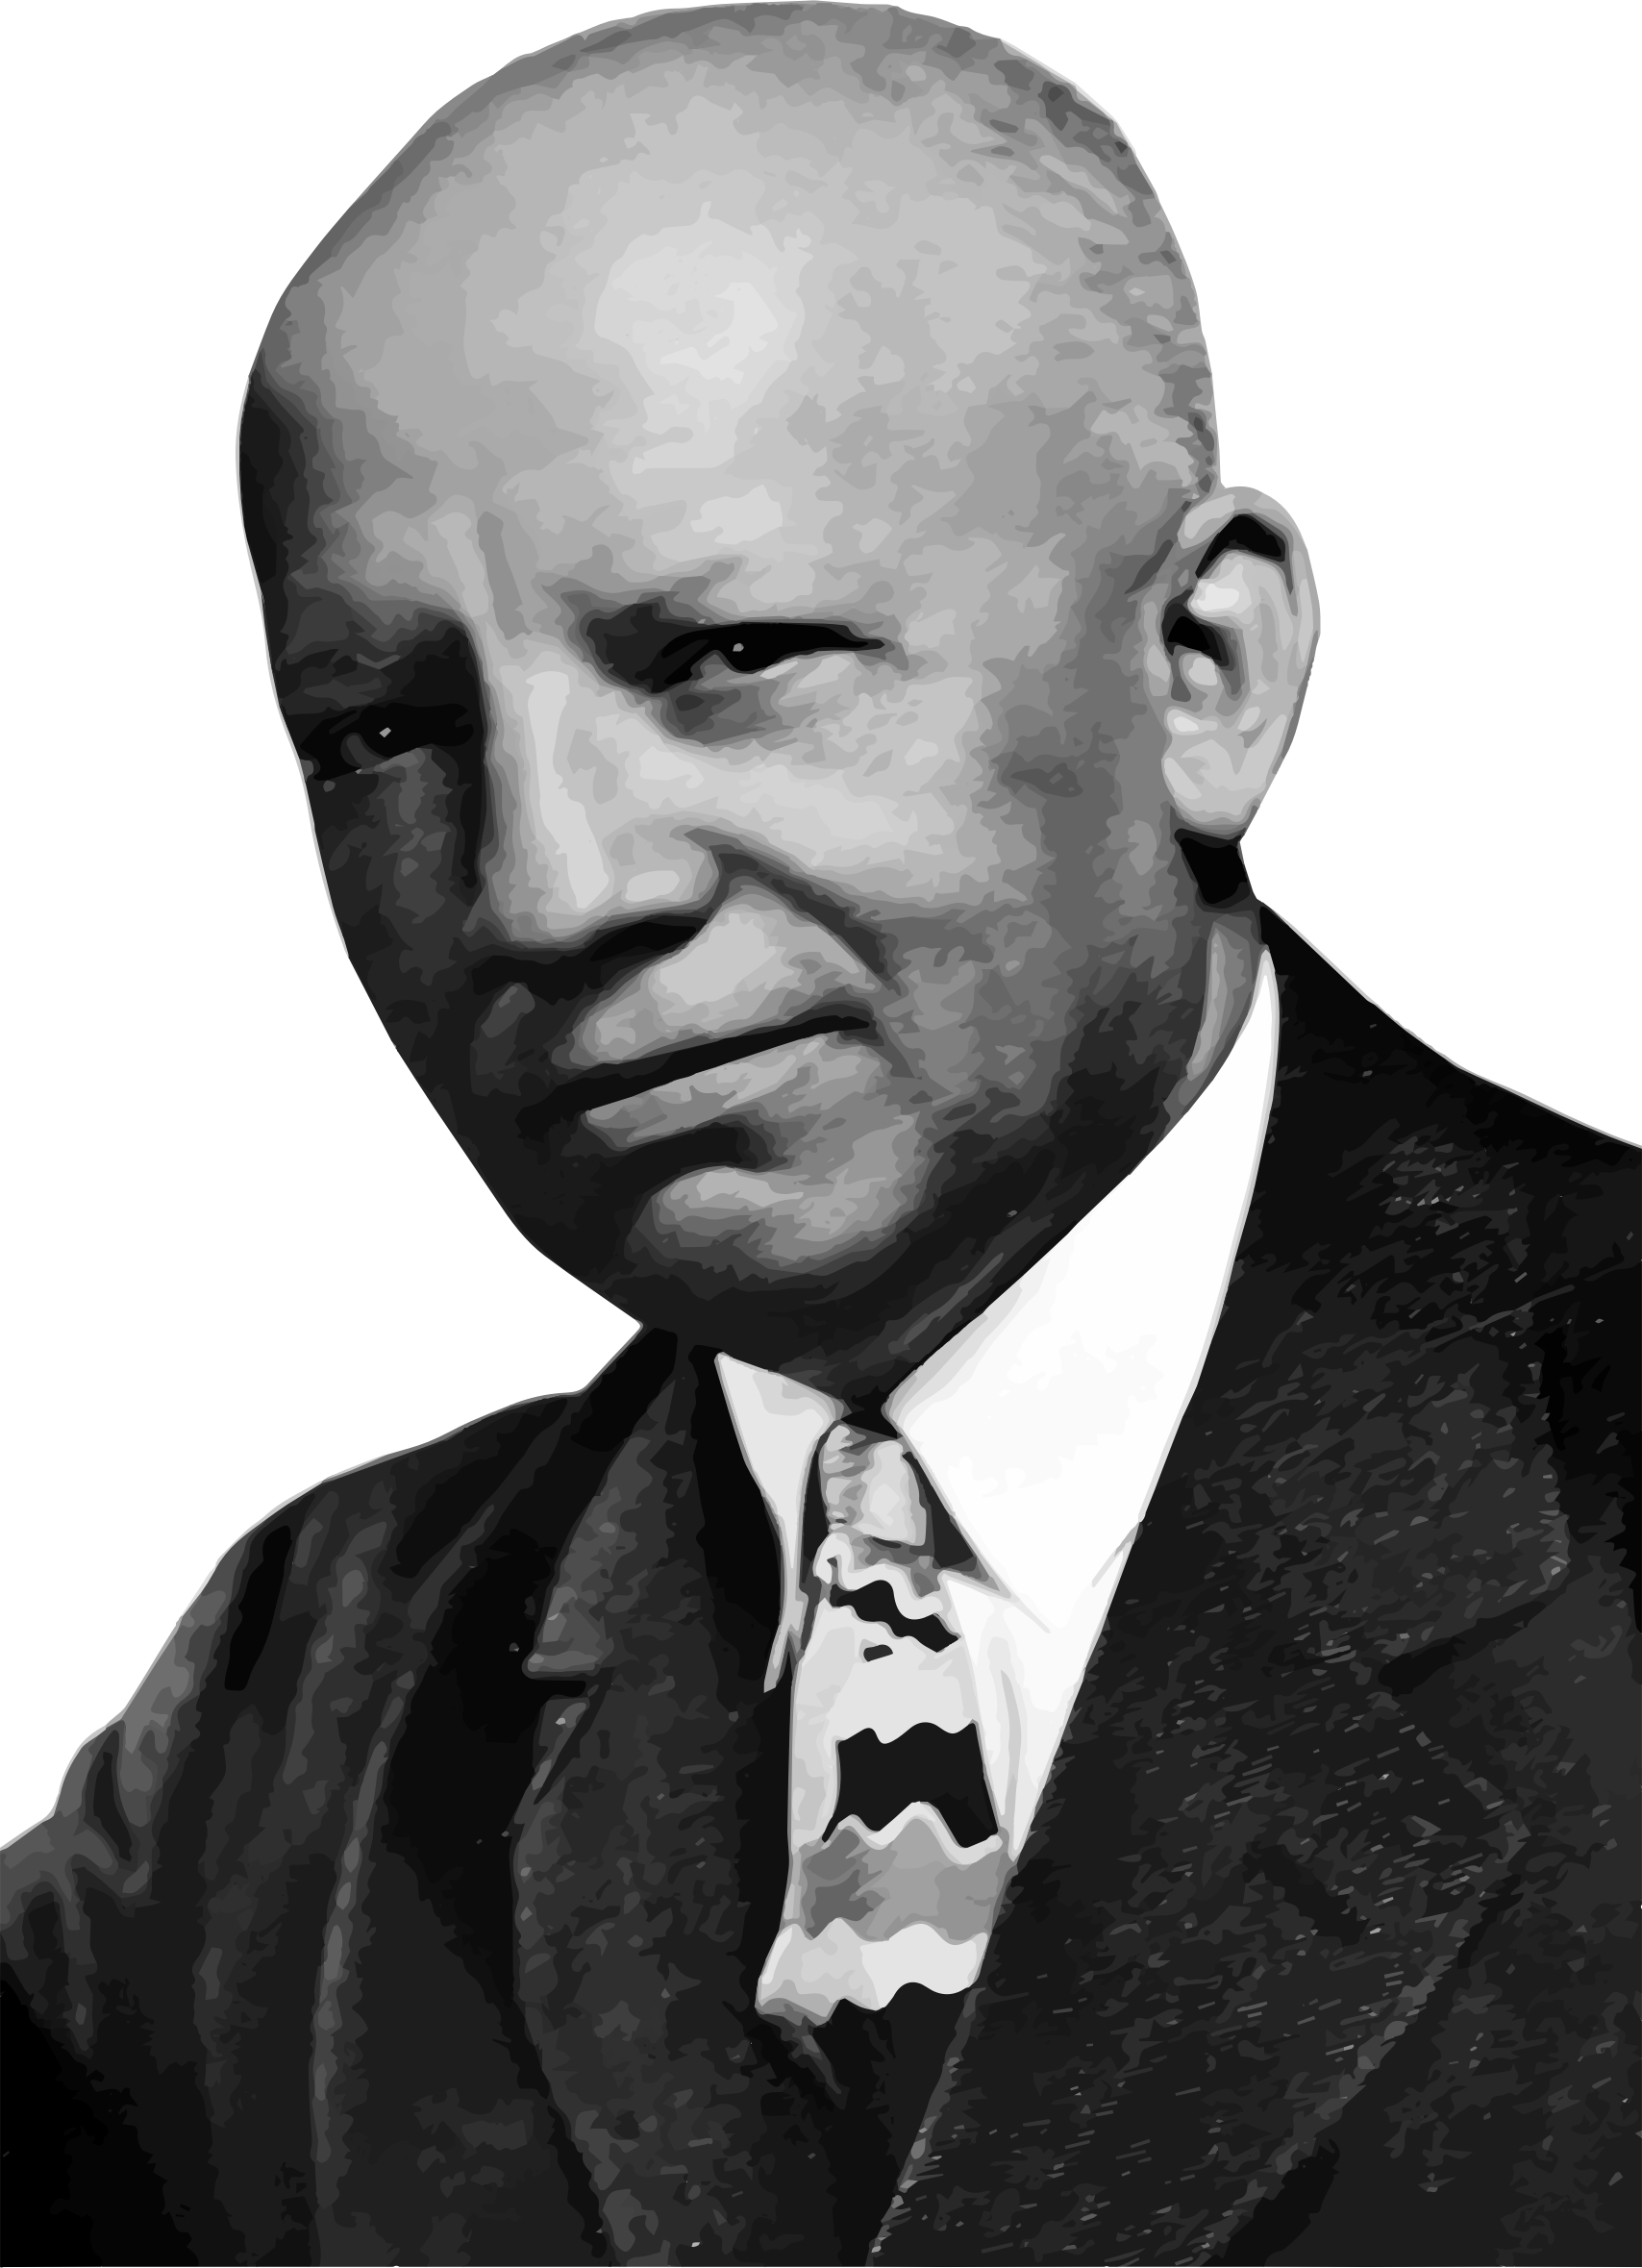 carter g. woodson by cactus cowboy